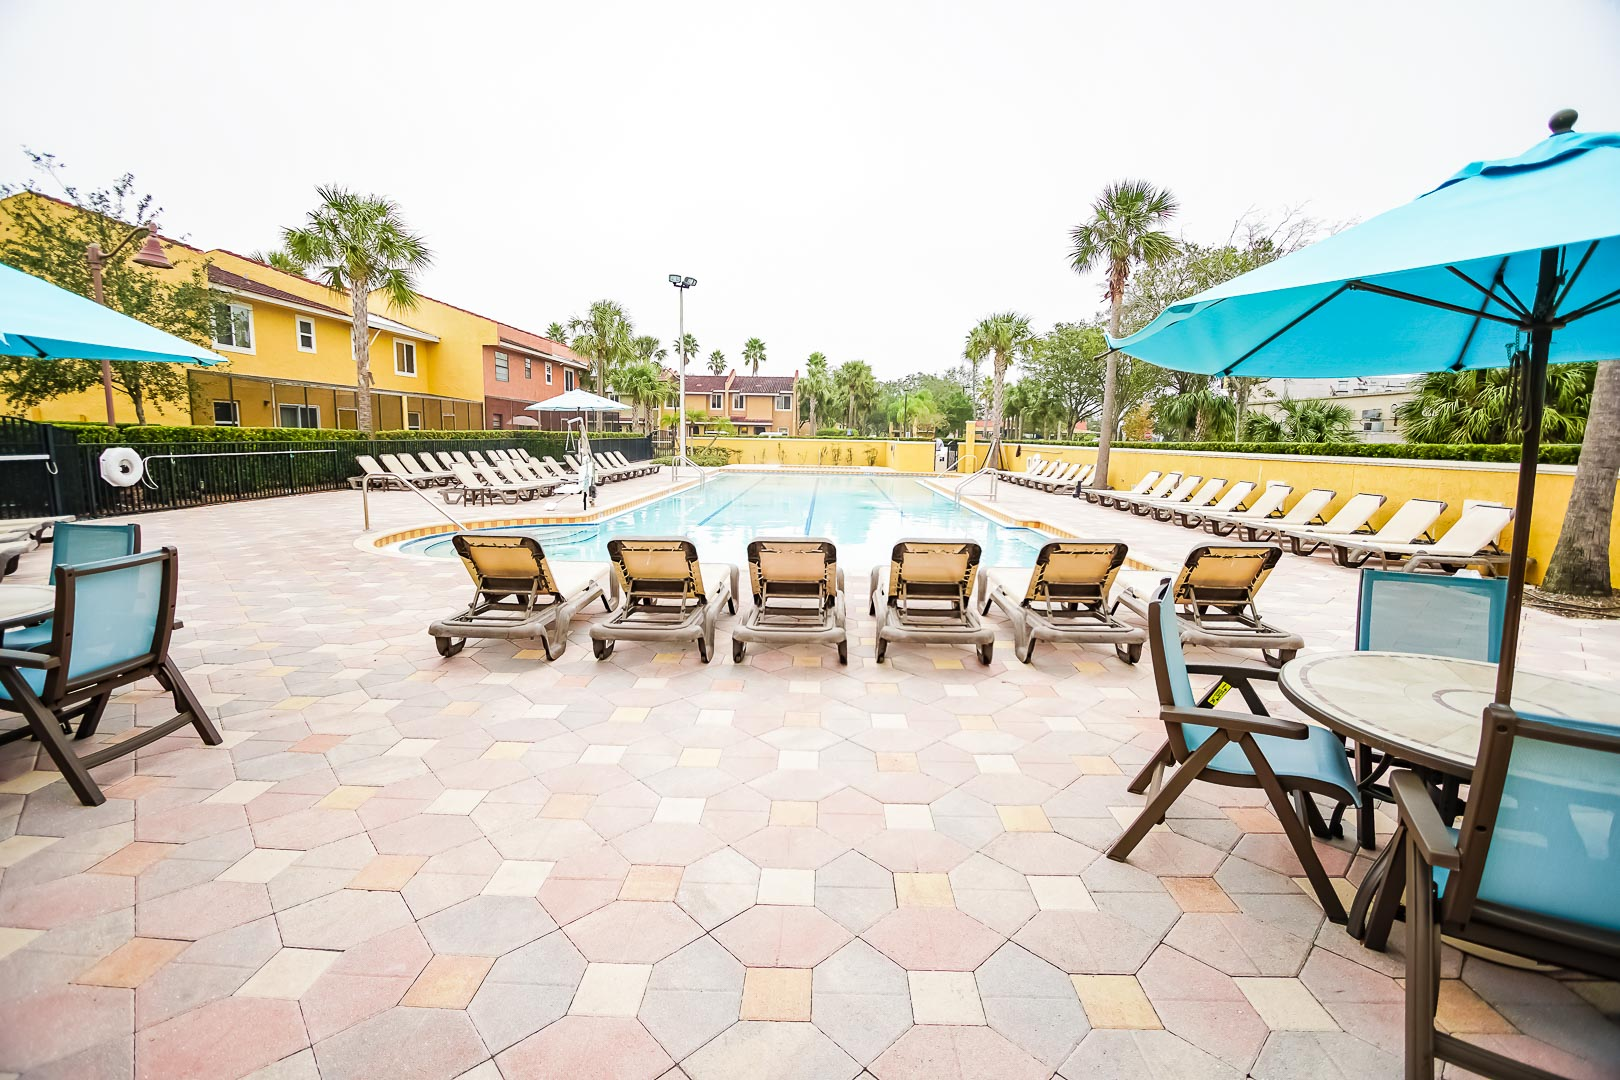 A relaxing view of the outdoor swimming pool at VRI's Fantasy World Resort in Florida.